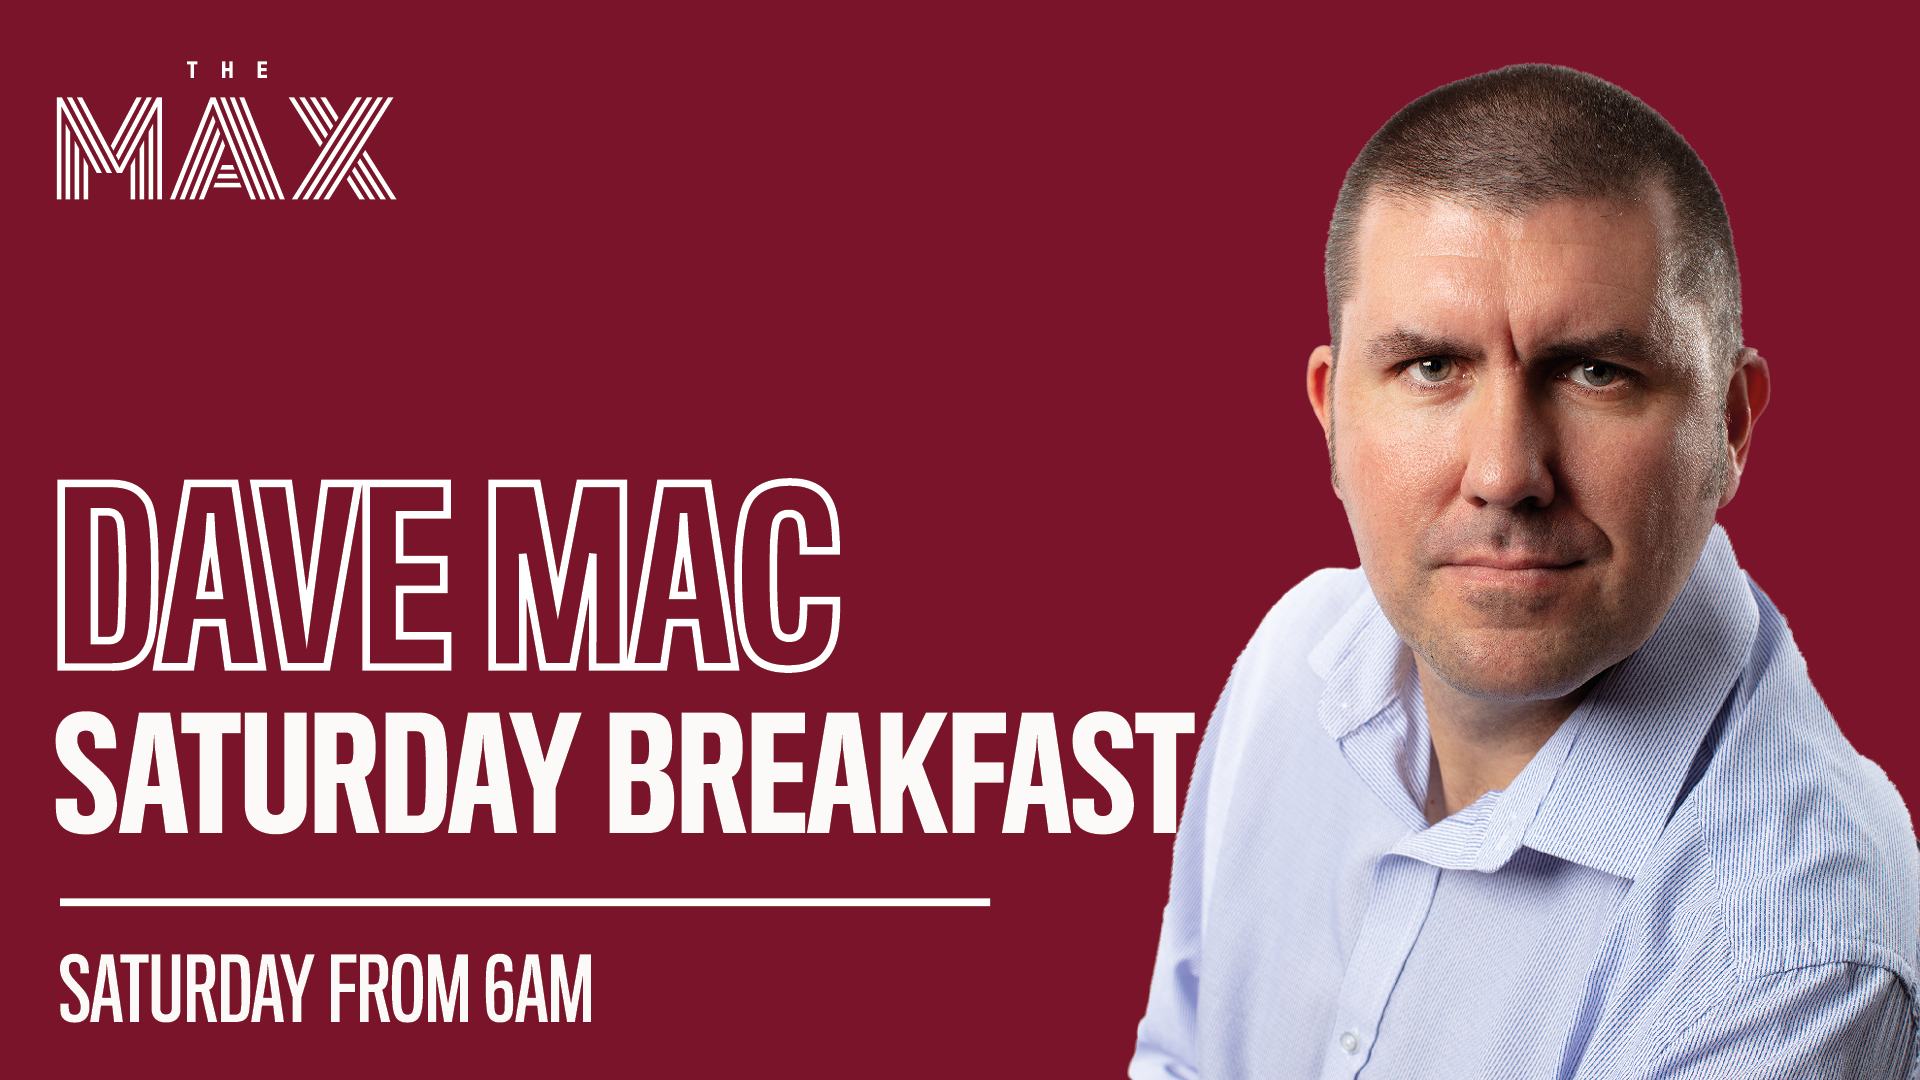 Saturday Breakfast with Dave Mac